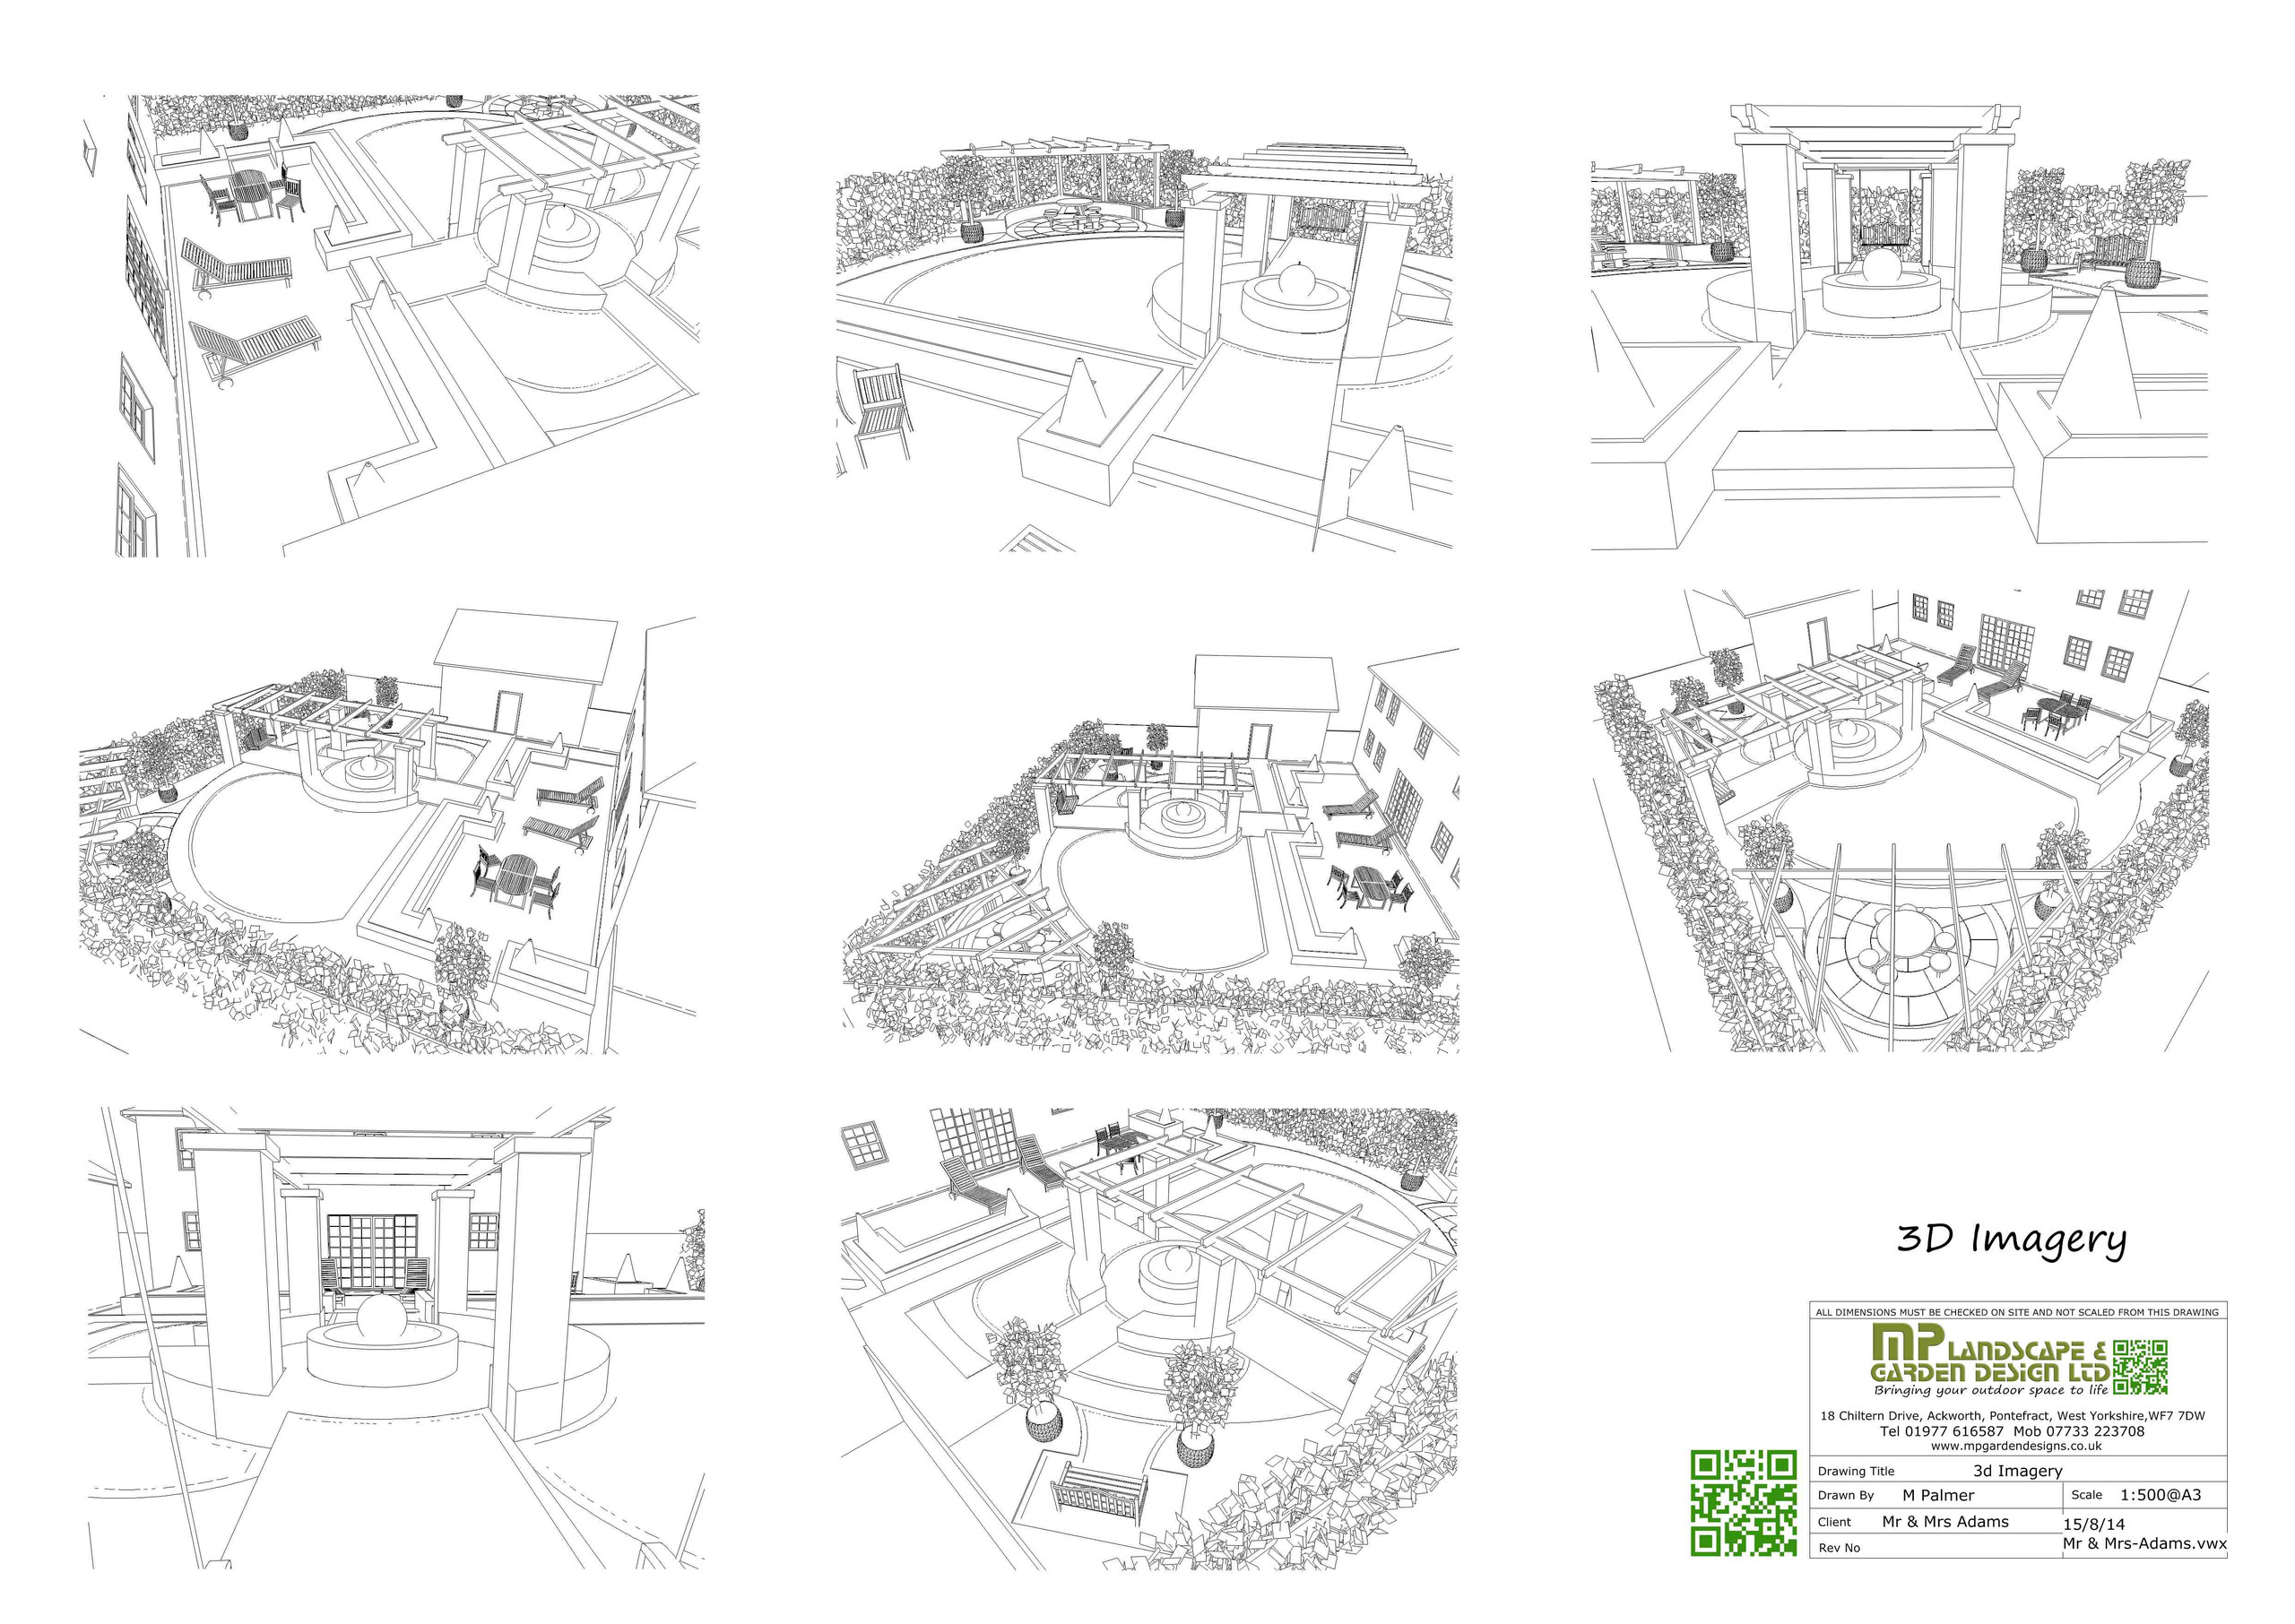 Garden Design layout 3D black and white plans for a garden in Wakefield